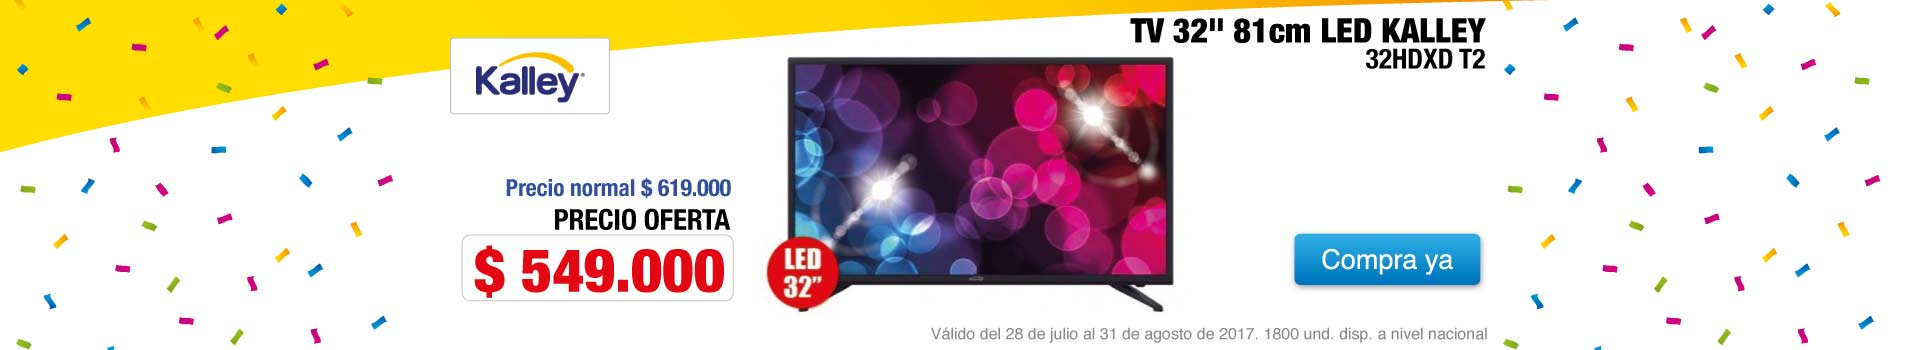 Tv32'80cm LED Kalley32HDXD T2 - 28 de julio al 31 de agosto